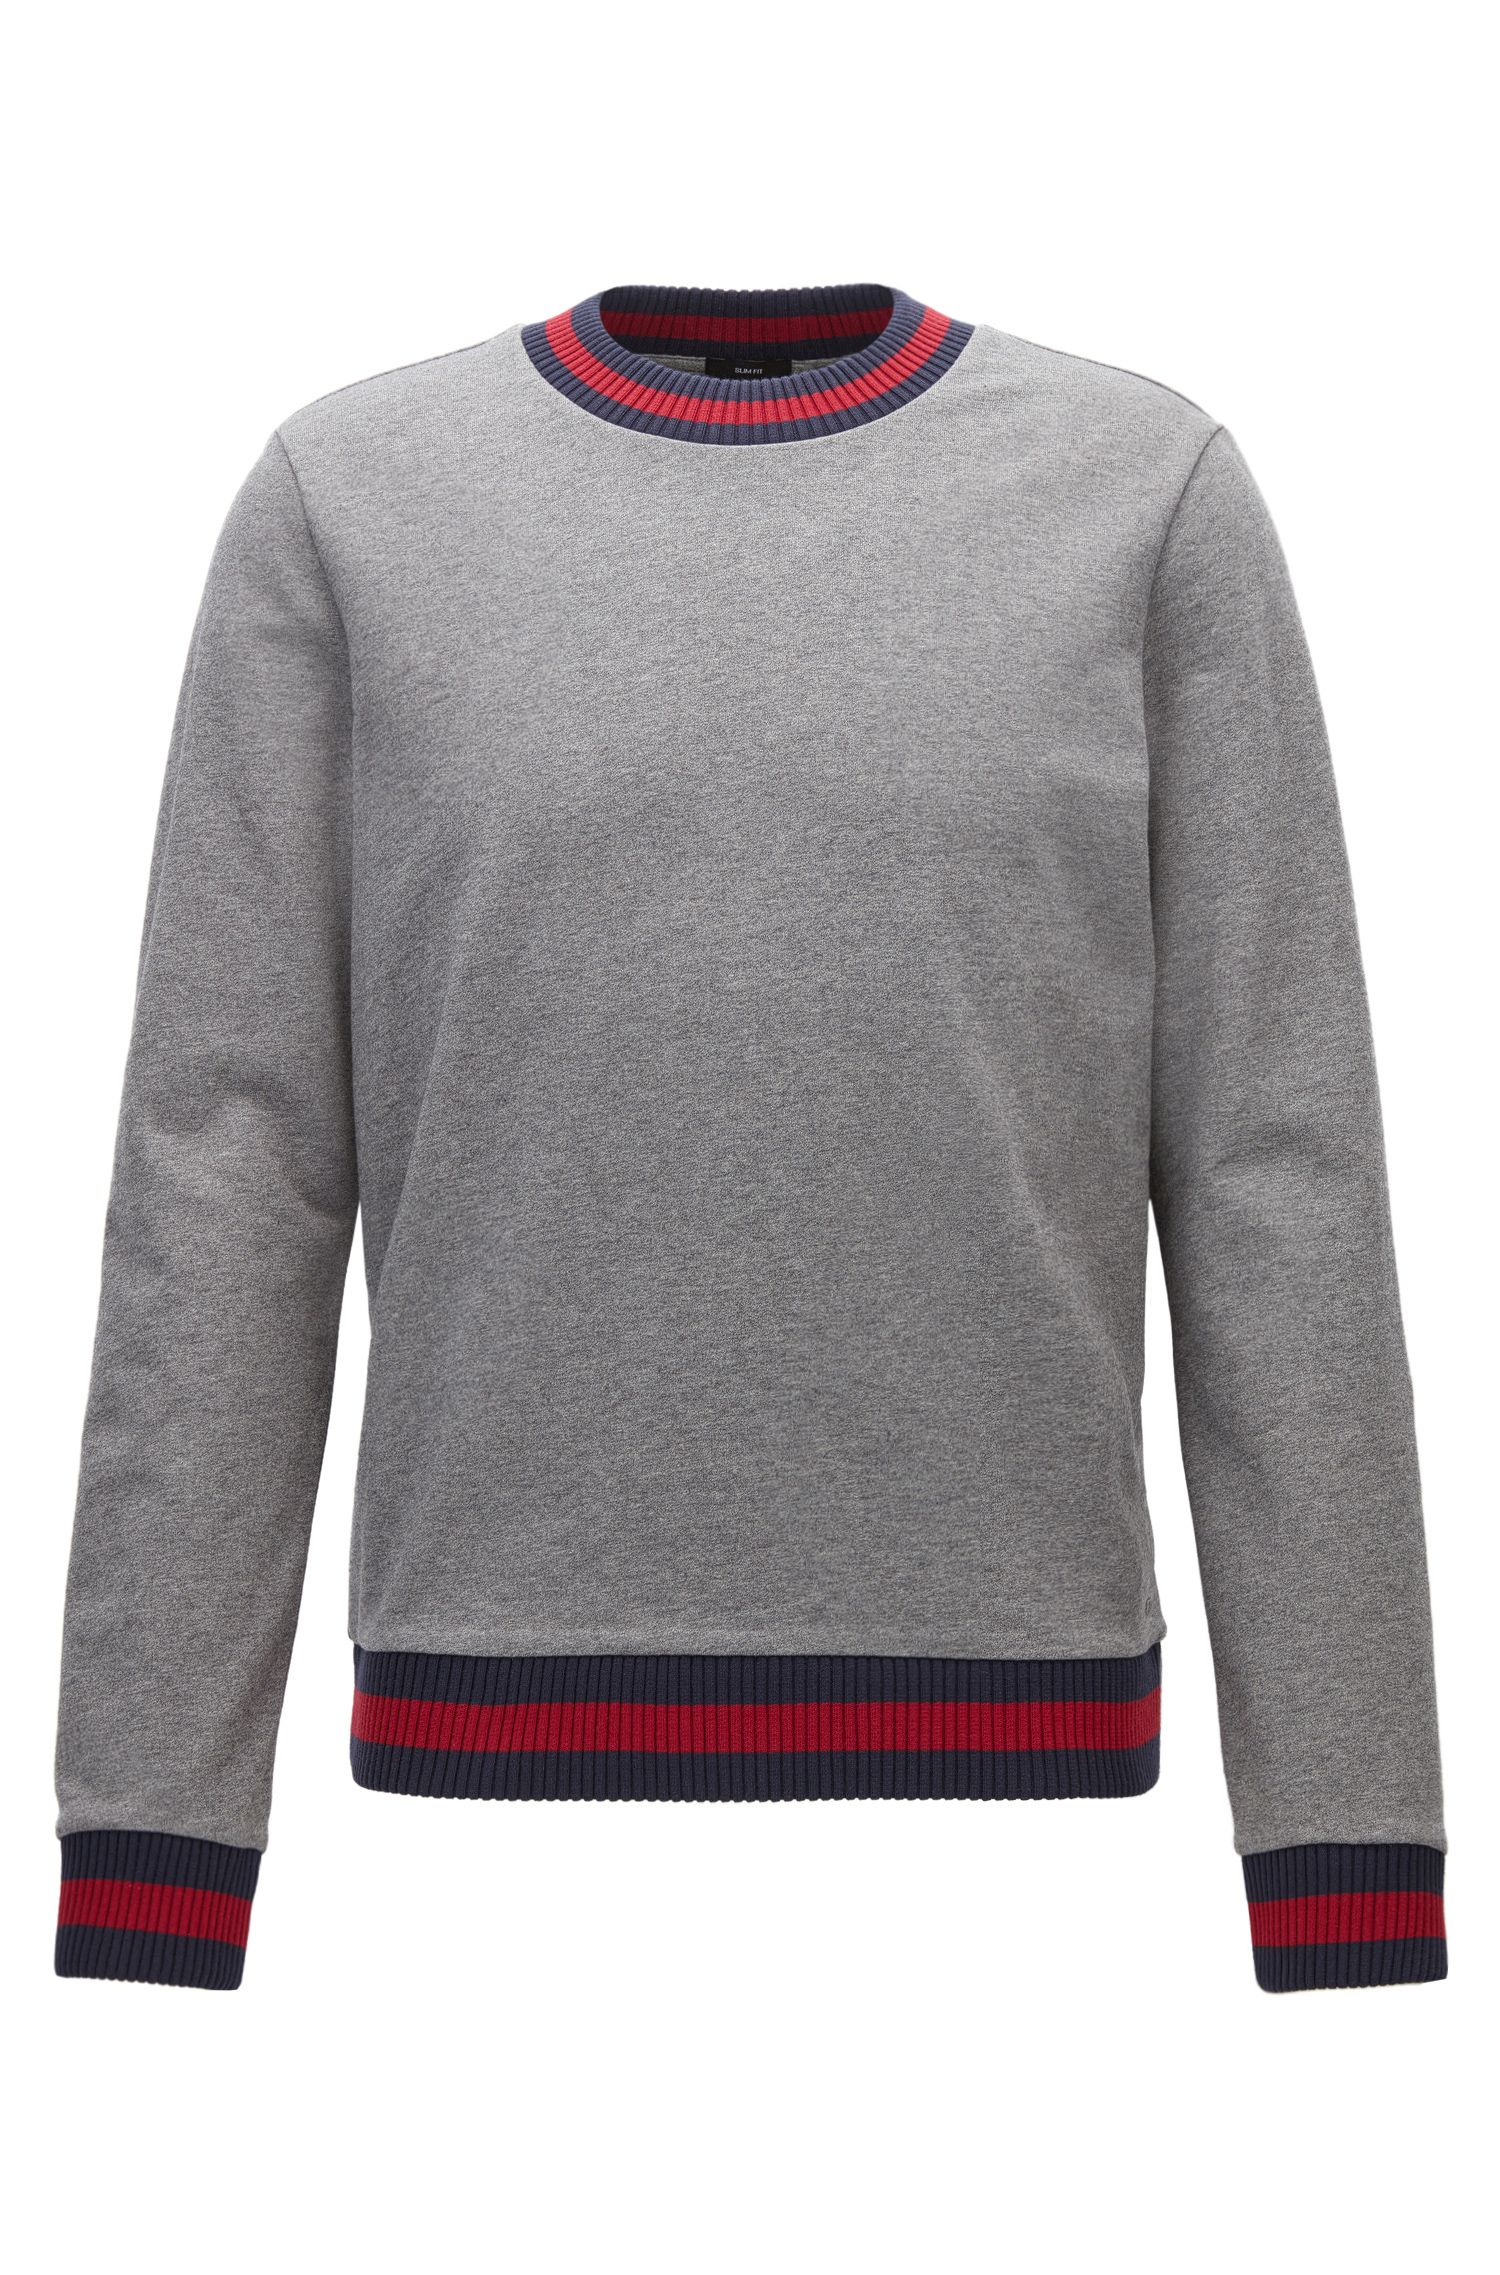 Sweat Slim Fit en molleton French Terry aux finitions bicolores